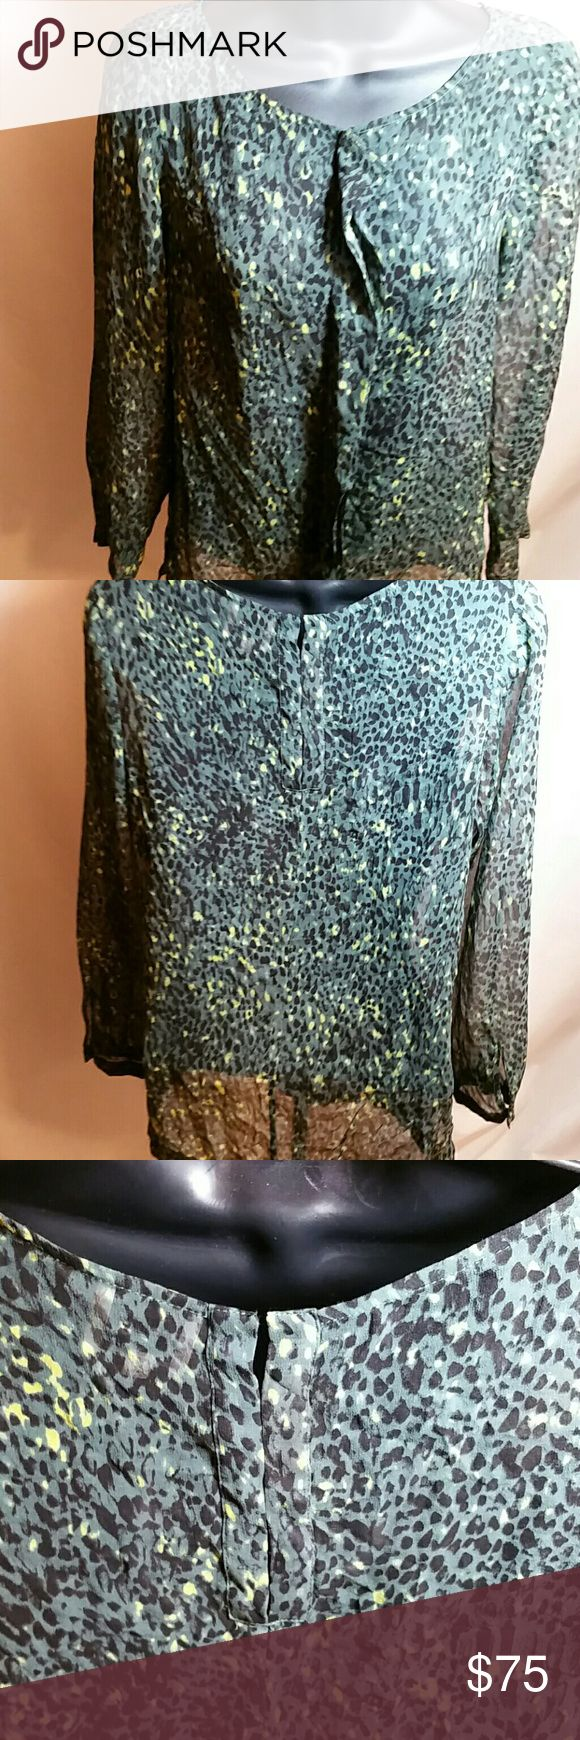 """NWOT Reiss Gray Leopard Silk Blouse Sz 2 NWOT Reiss Greenish Gray Leopard Silk Blouse Sz 2 Dress like a princess bought at a sample sale. Silk is green yellow and black. Hook and eyes on back to close. 3"""" slit on each side.  Covered buttons on sleeves. 36"""" chest, 24"""" long from shoulder. 16"""" between shoulders and sleeves are 21"""" long. Made in China of 100% silk. Dry Clean Only. The top is sheer. Reiss Tops Blouses"""